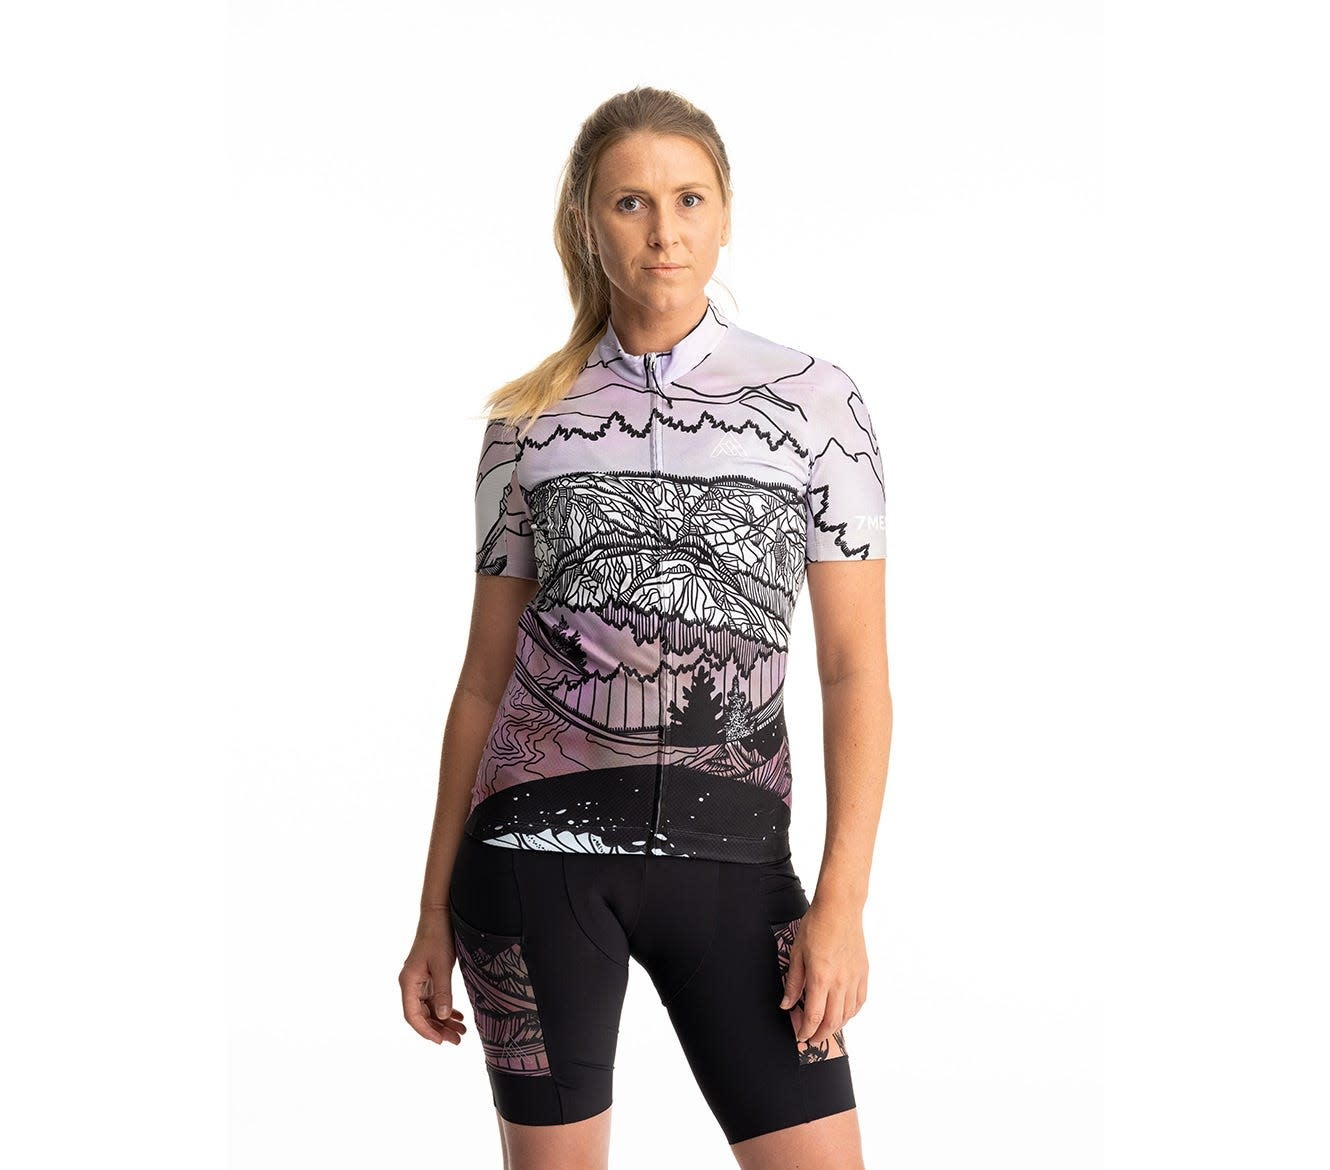 7 Mesh, Horizon Jersey, SS Women's Kate Zessel Collection (Large)